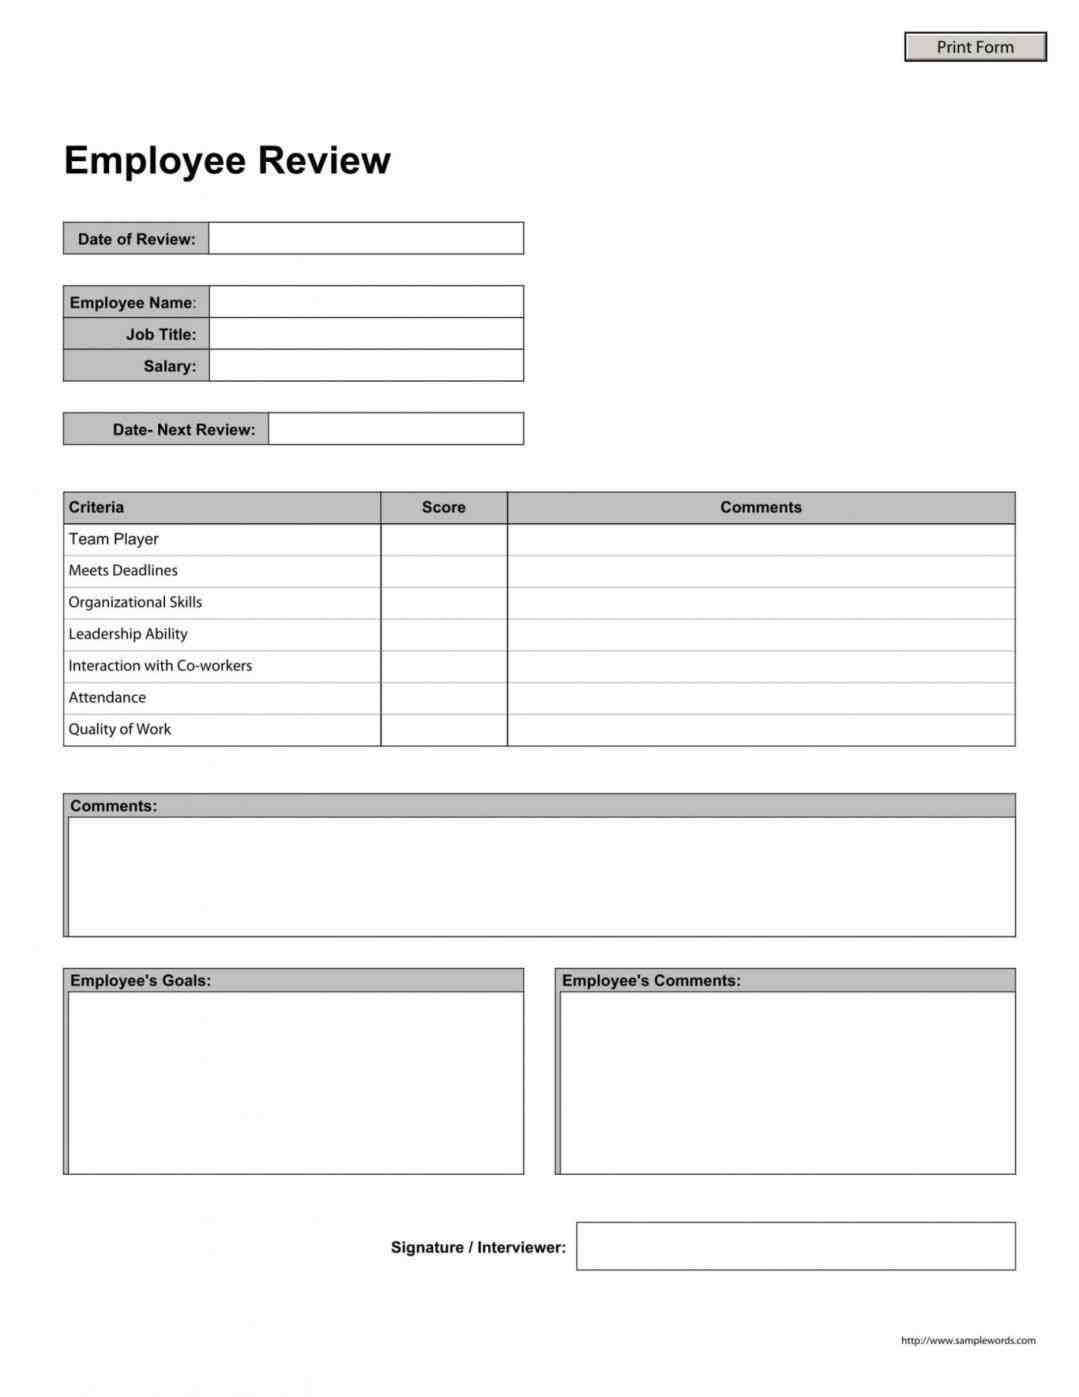 letter format doc best of rhssoftco performance Employee Performance Review Template Excel appraisal letter format doc best of employee rhssoftco review